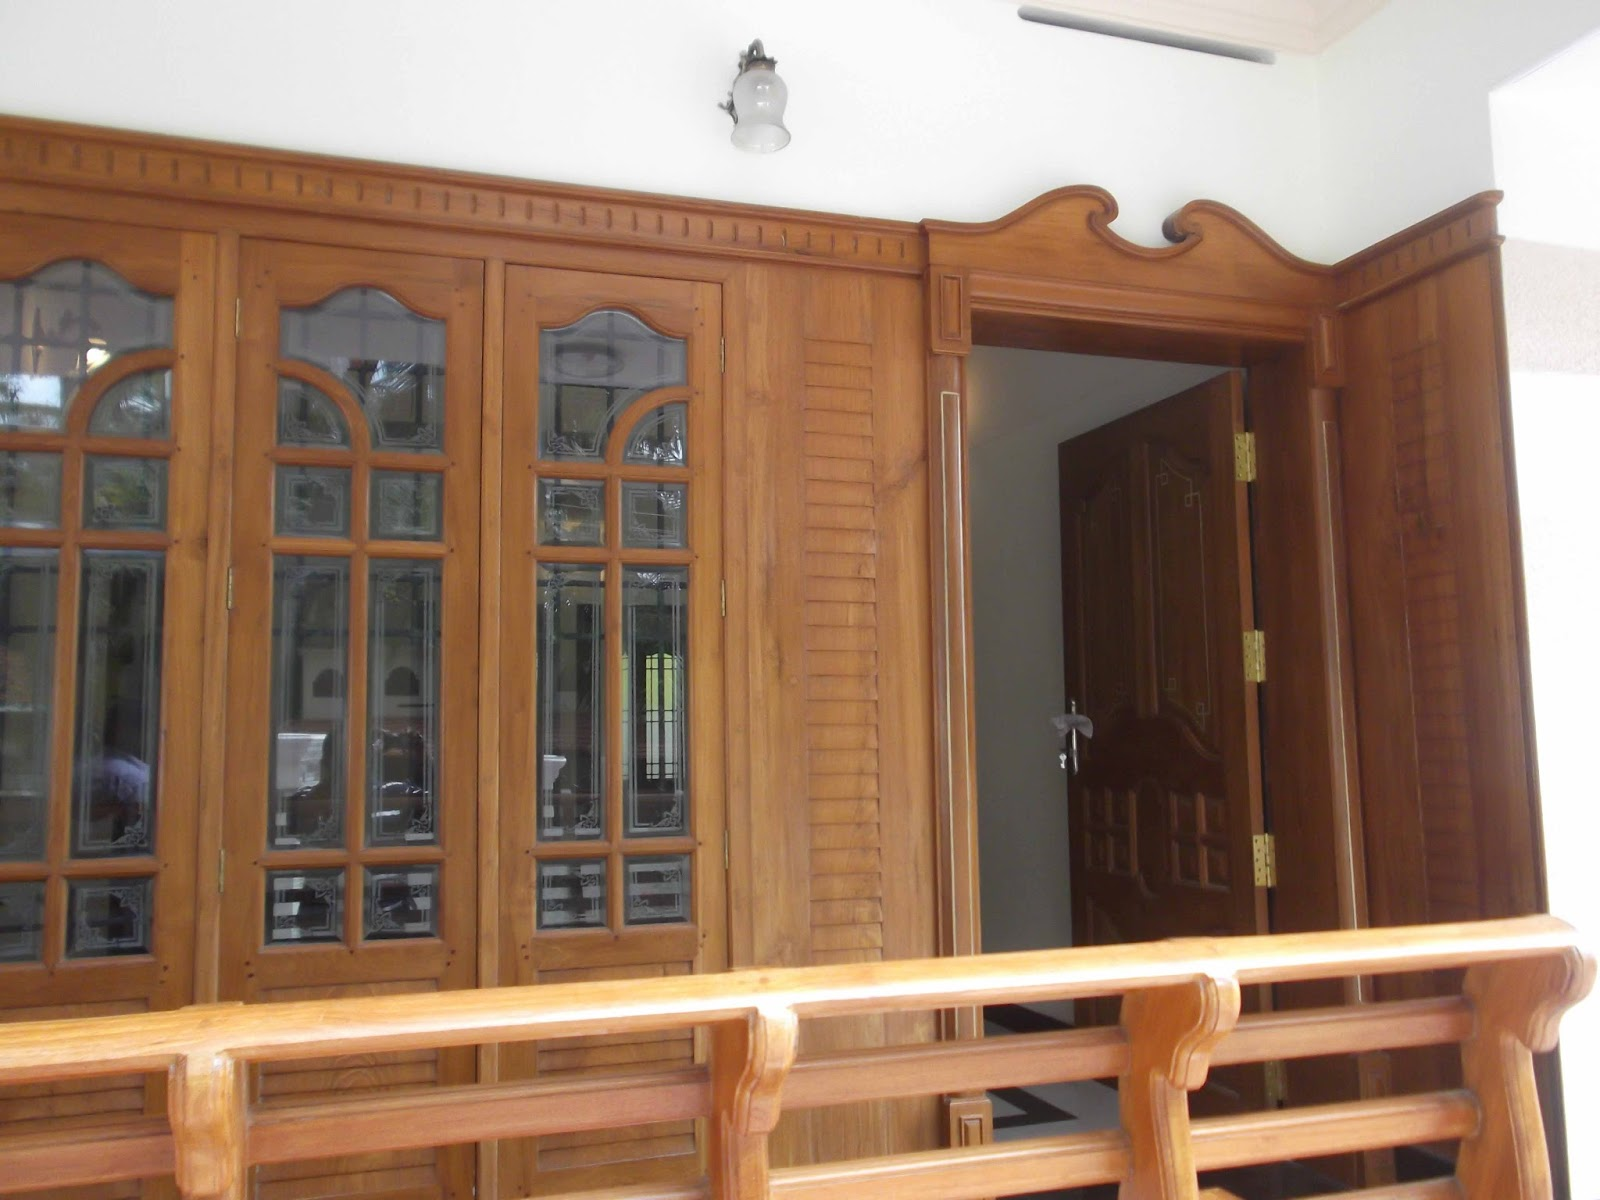 kerala style carpenter works and designs september 2013 front entrance wooden doors for homes carpenter work ideas